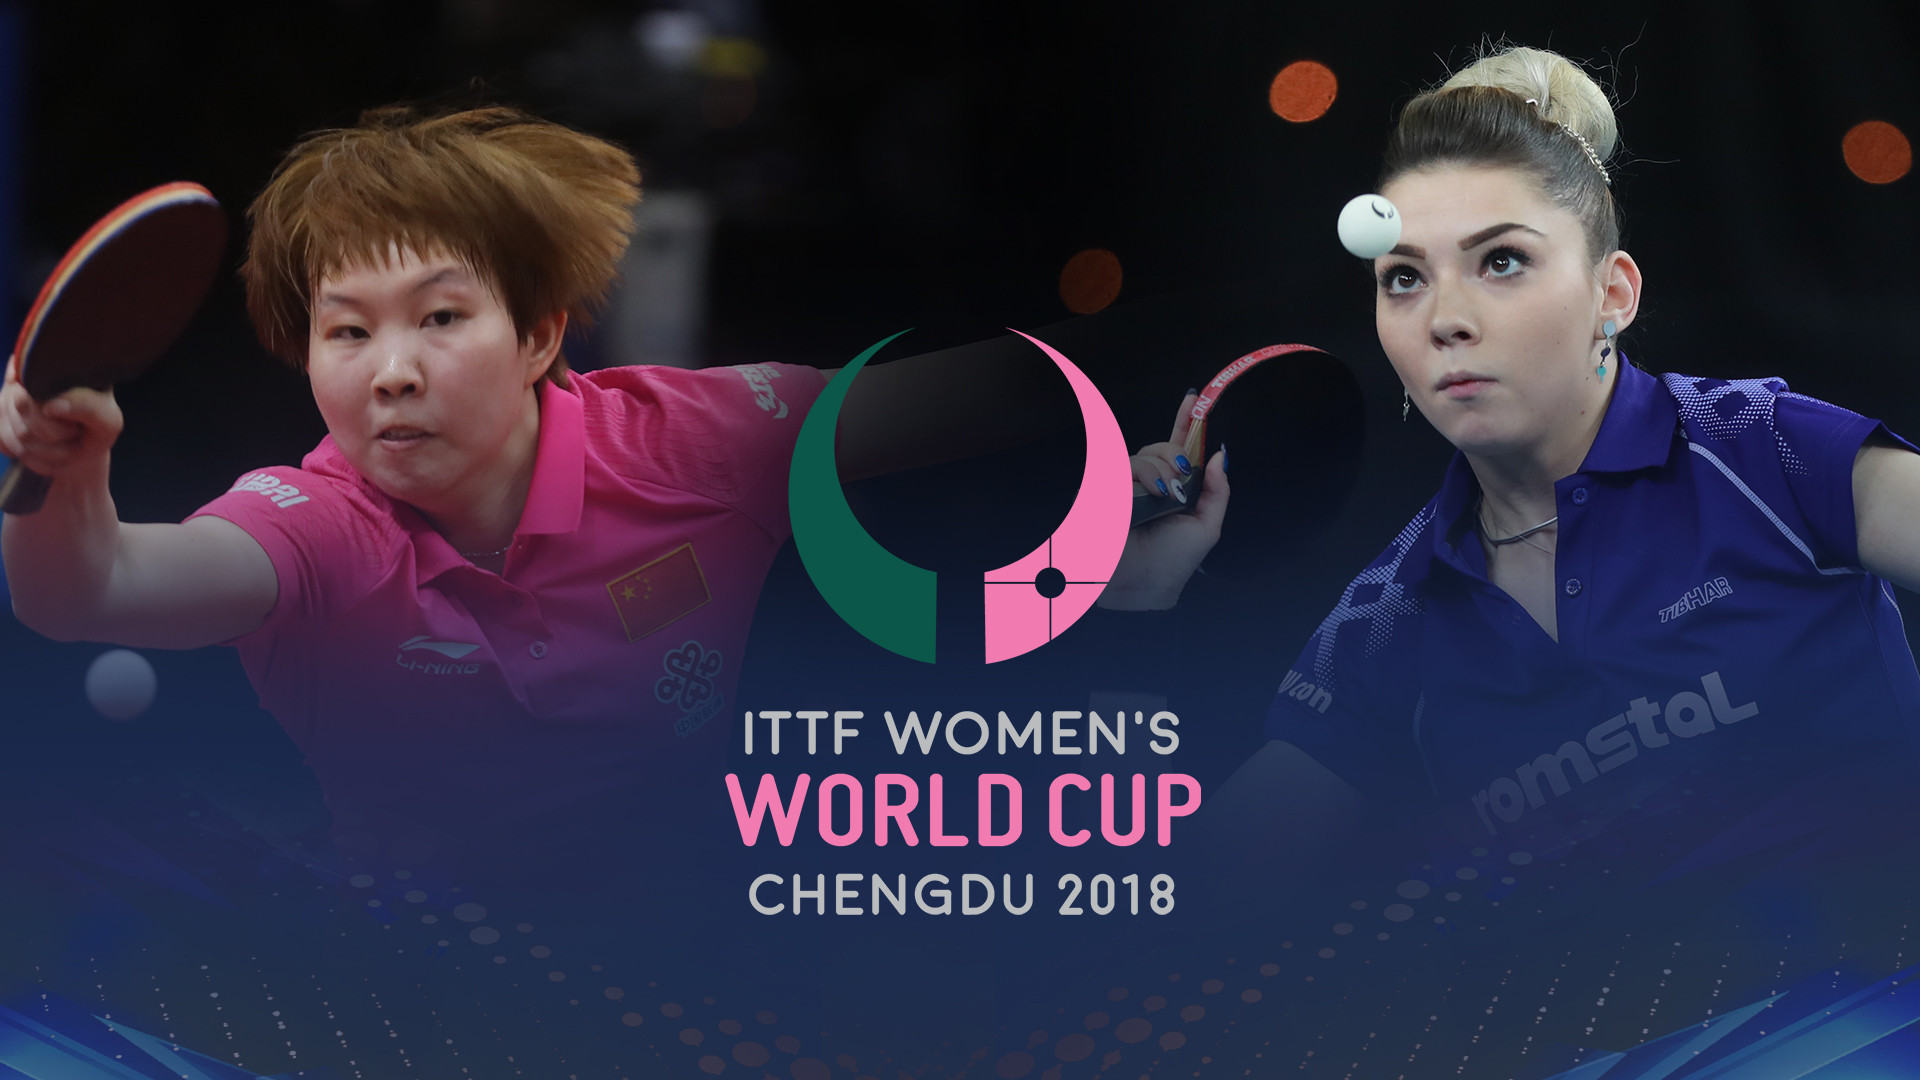 China's world number one Zhu Yuling faces a challenging task if she is to retain her ITTF Women's World Cup title in her home city of Chengdu over the next three days ©ITTF